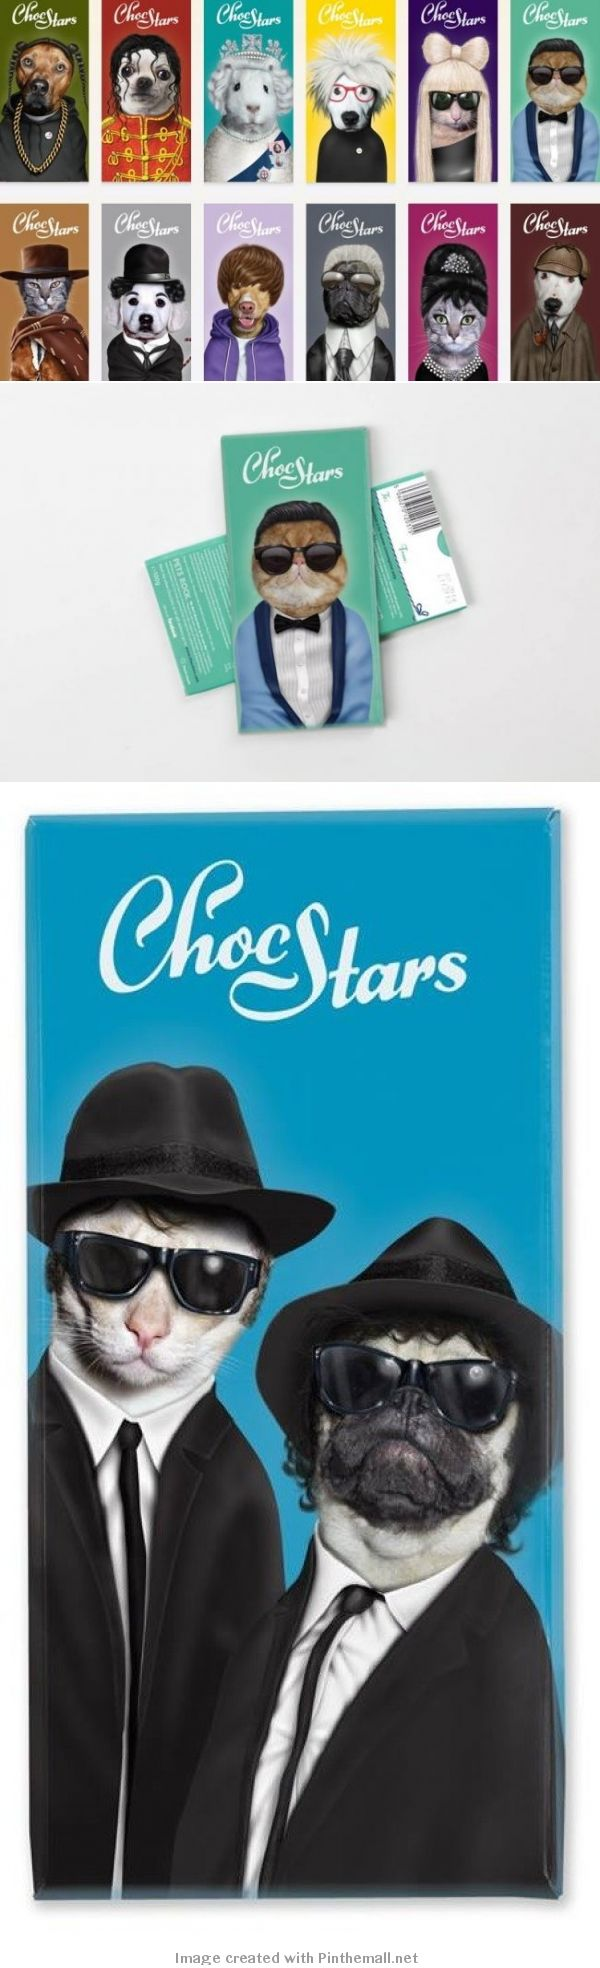 OMG! look what I found more cute Choc Stars #packaging PD via http://www.trendenciasshopping.com/alimentacion/choc-stars-chocolate-con-mucho-glamour